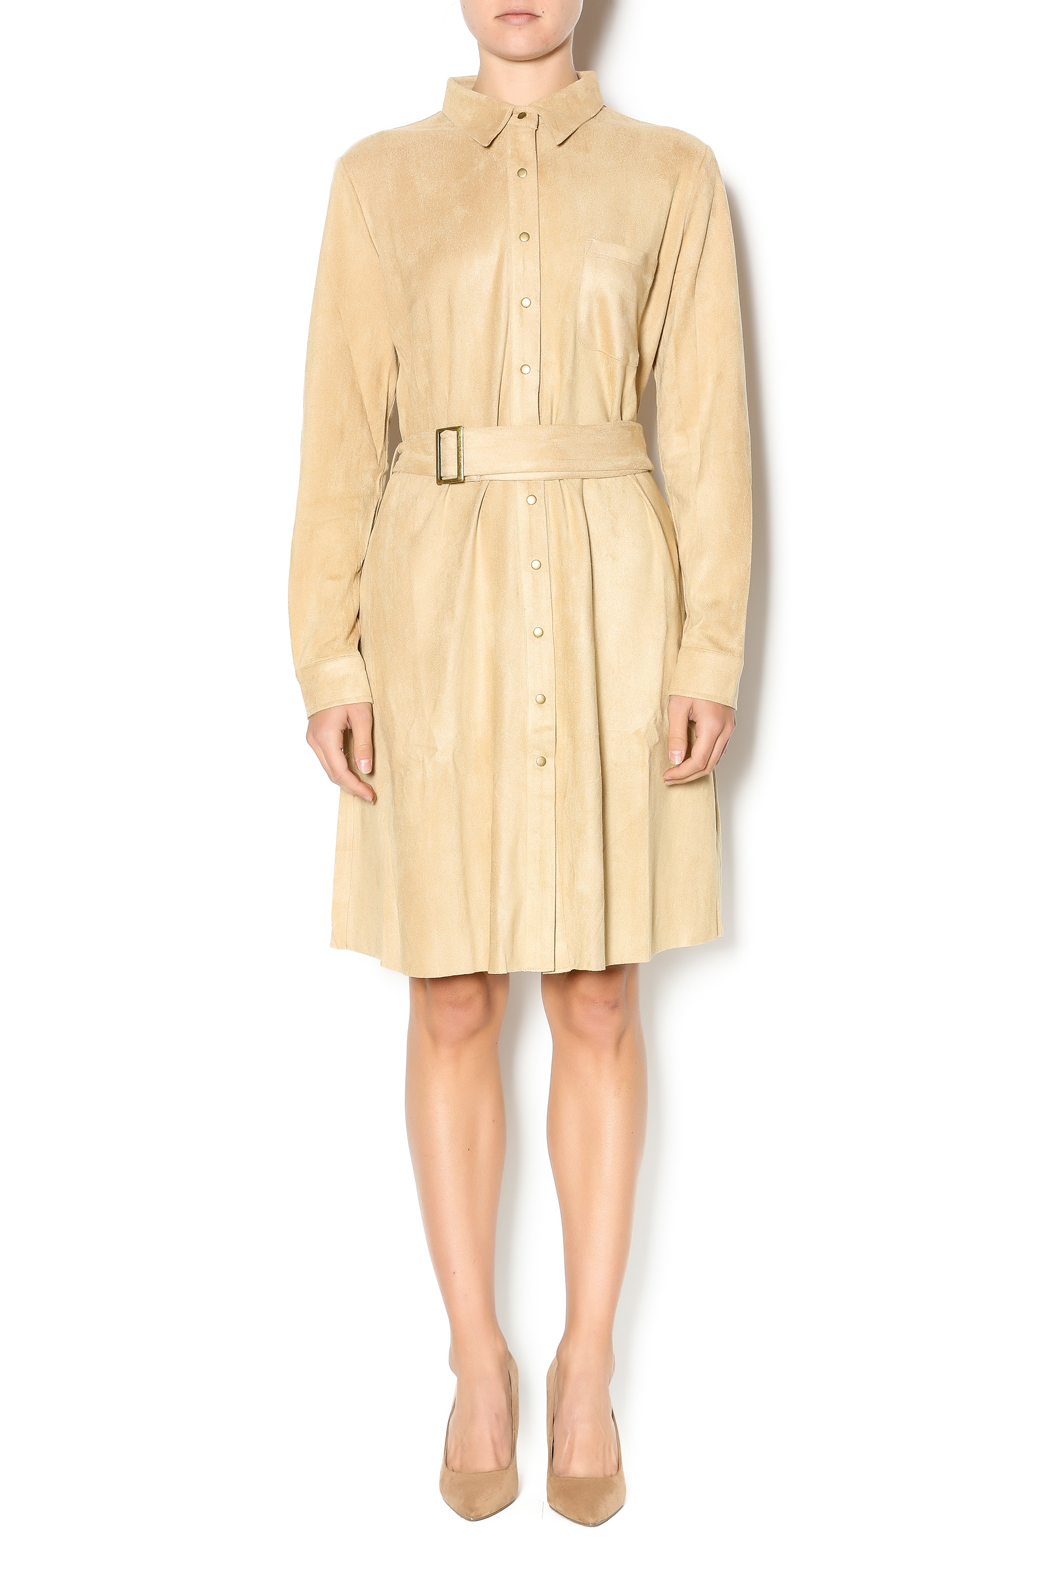 Joh Apparel Faux Suede Shirtdress - Front Full Image